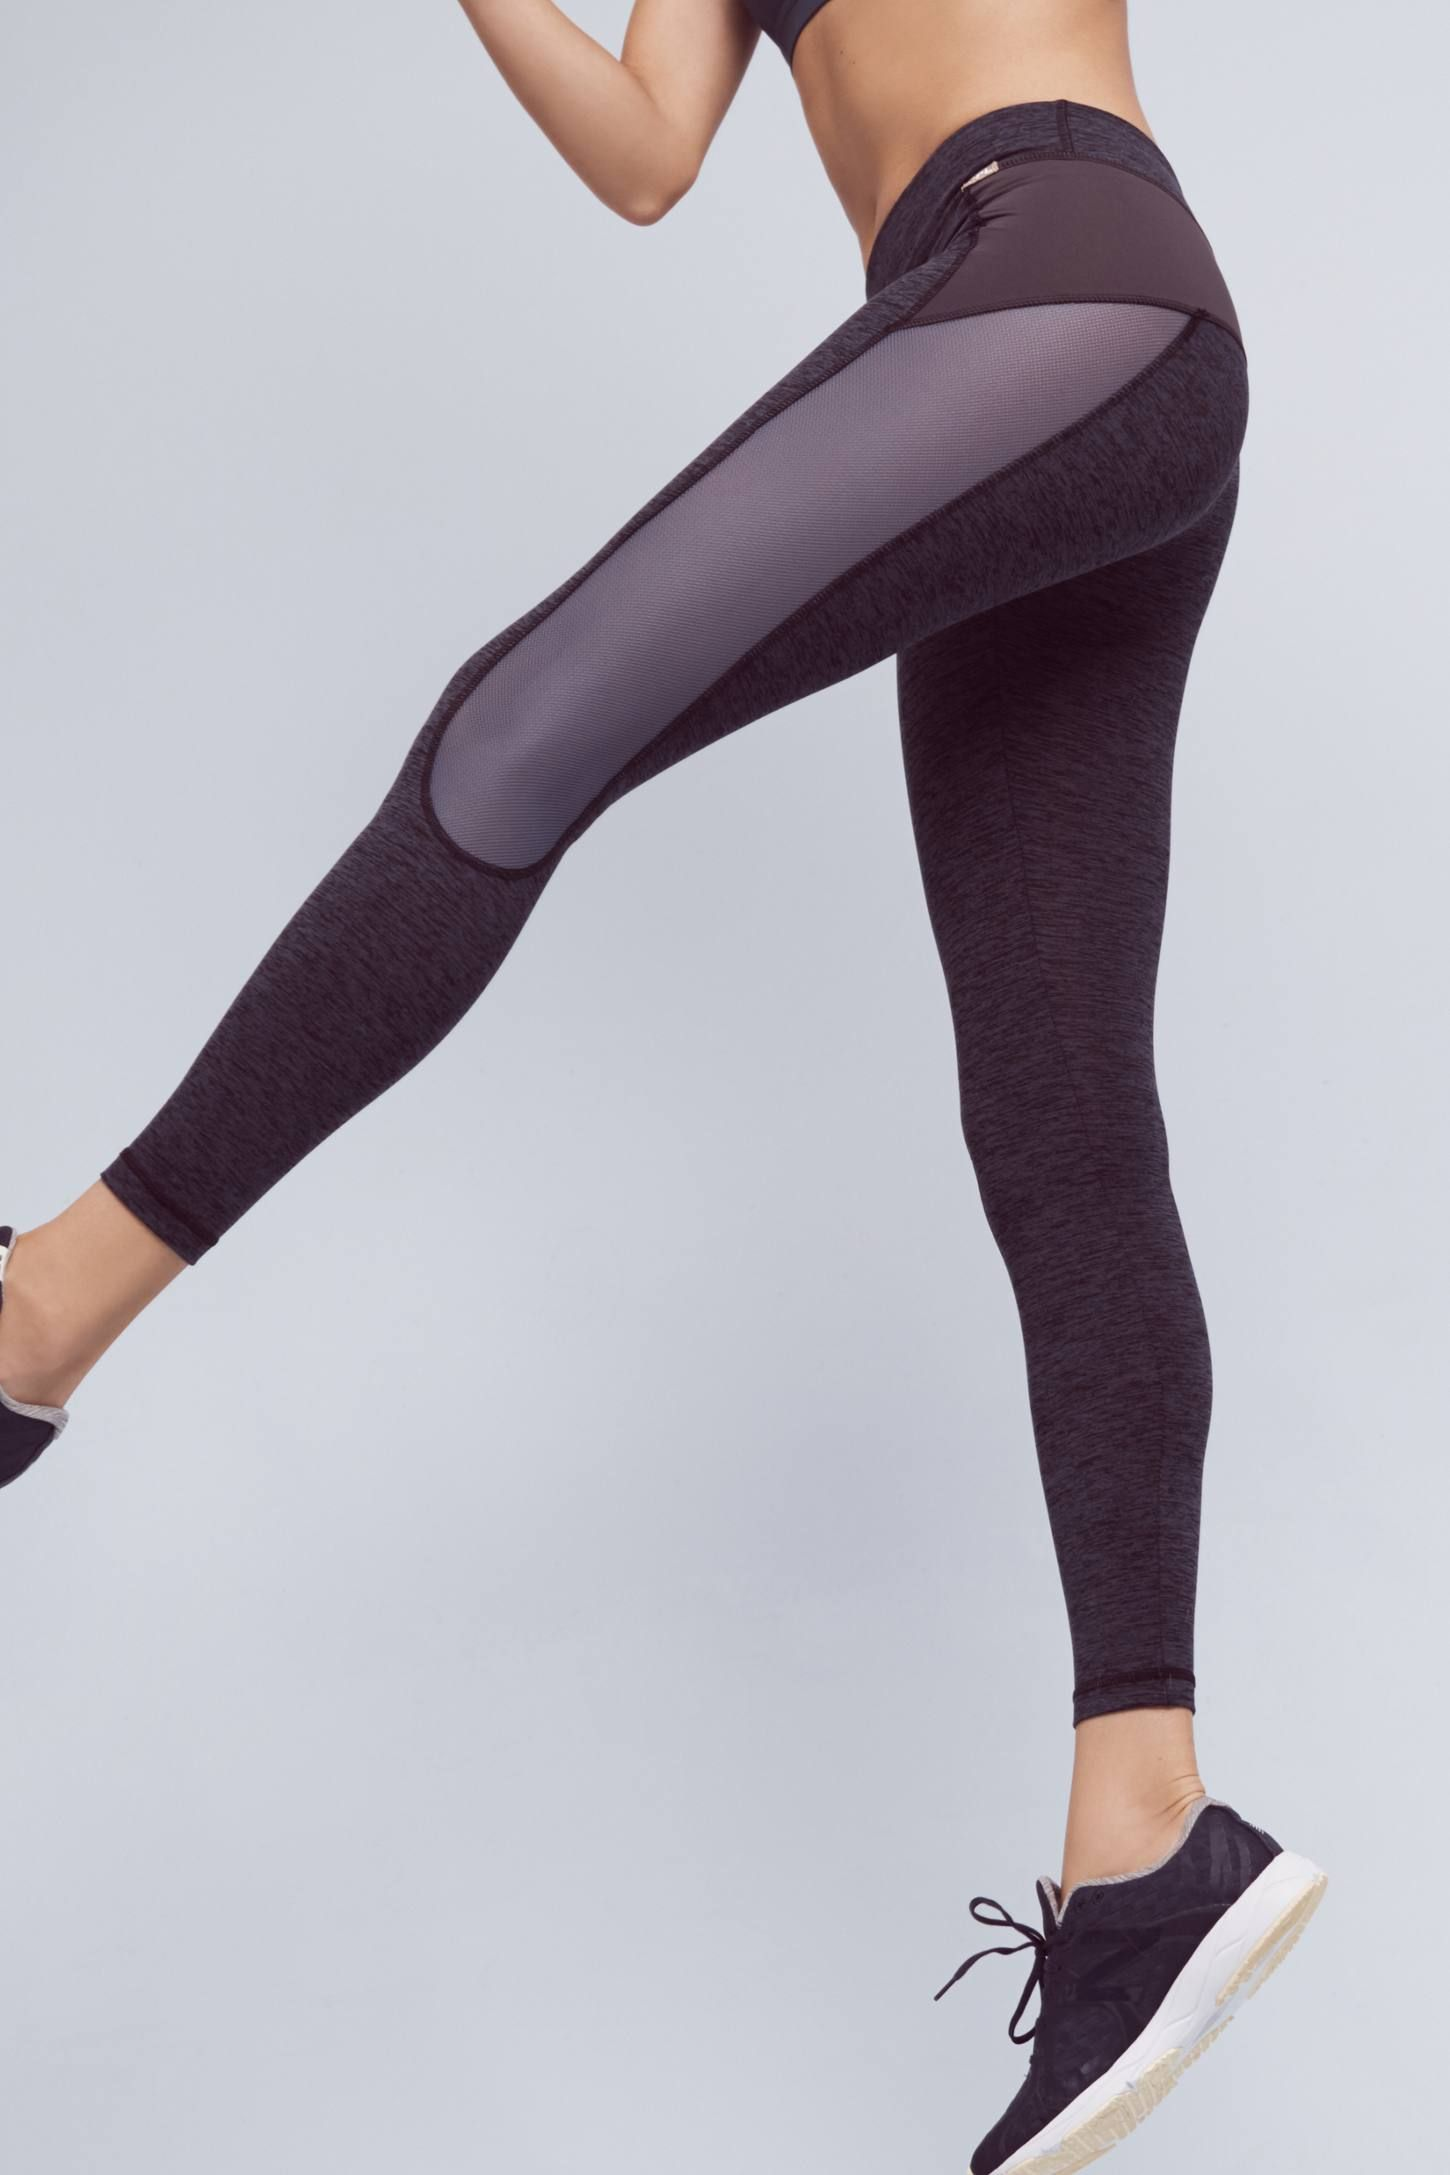 Charcoal Marl XCurvate Leggings Lounge wear, Workout